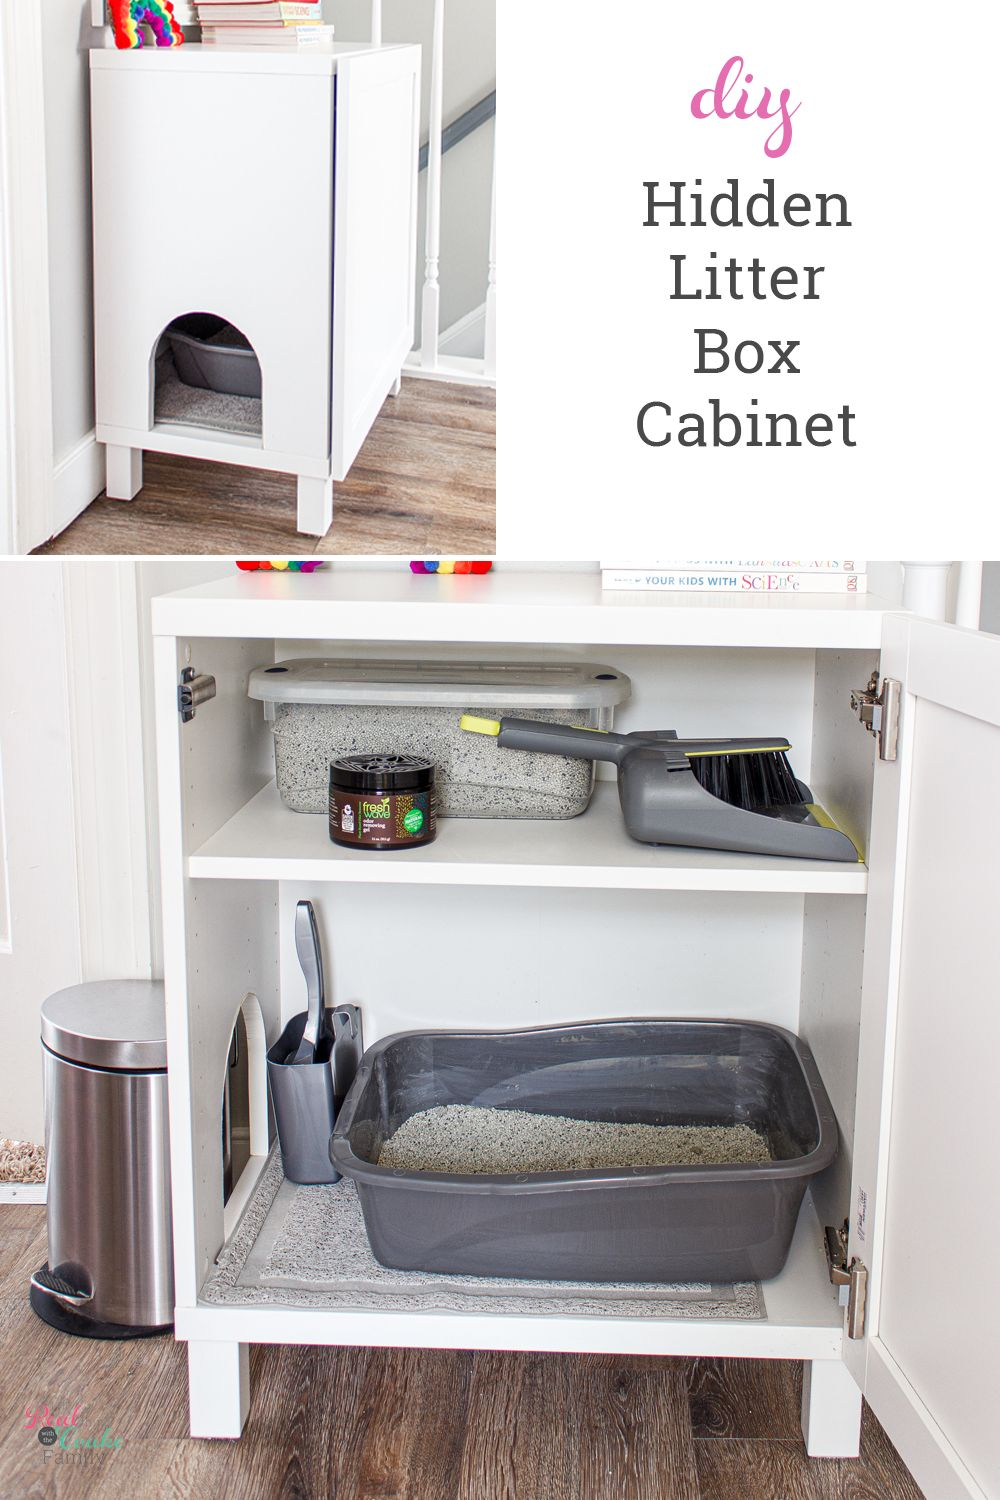 This is the best litter box idea I've seen to make a DIY hidden litter box for the cat using an IKEA cabinet. The litter box enclosure an easy project that is dog proof and cheap. #LitterBoxIdeas #IKEAHack #LitterBoxEnclosure